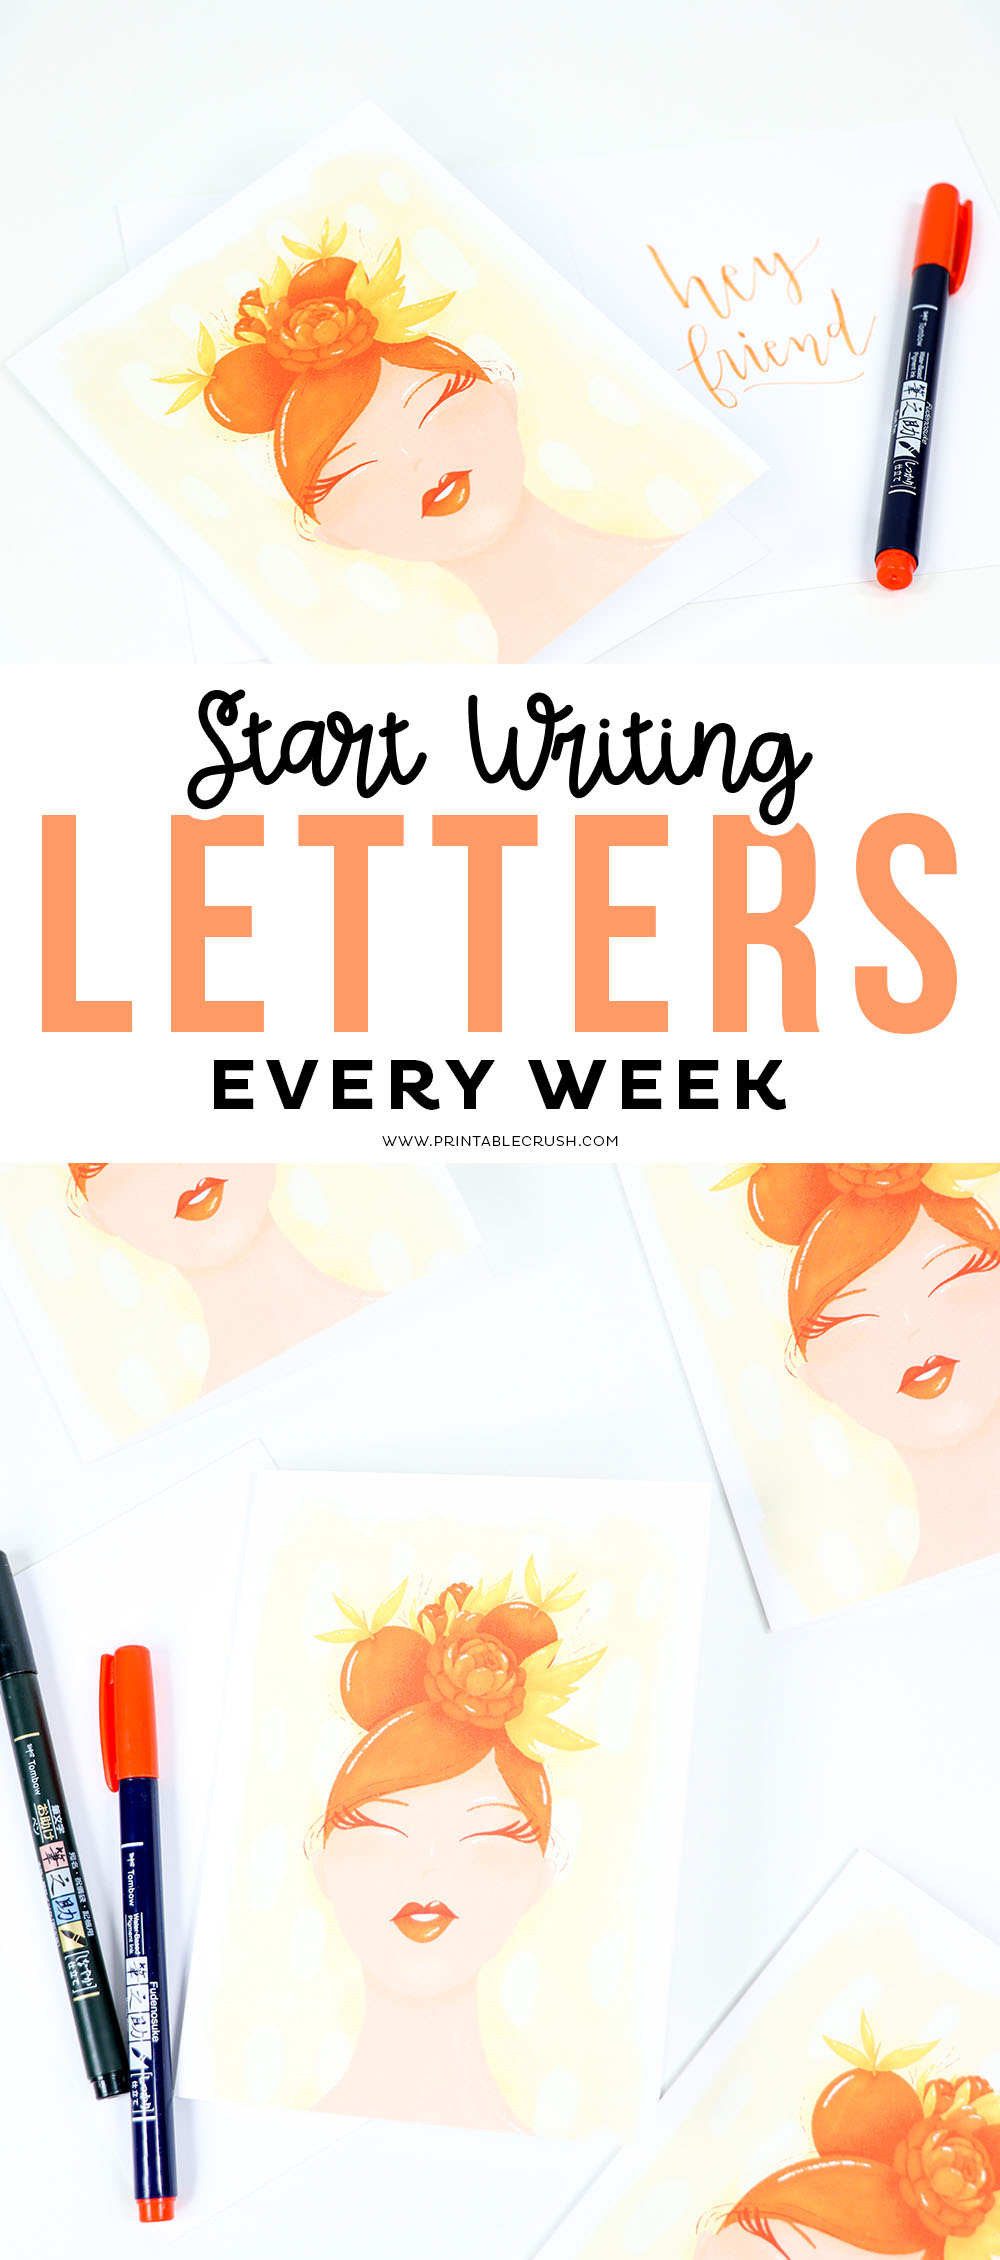 Start writing Letters EVERY WEEK with the One Per Week Subscription Box